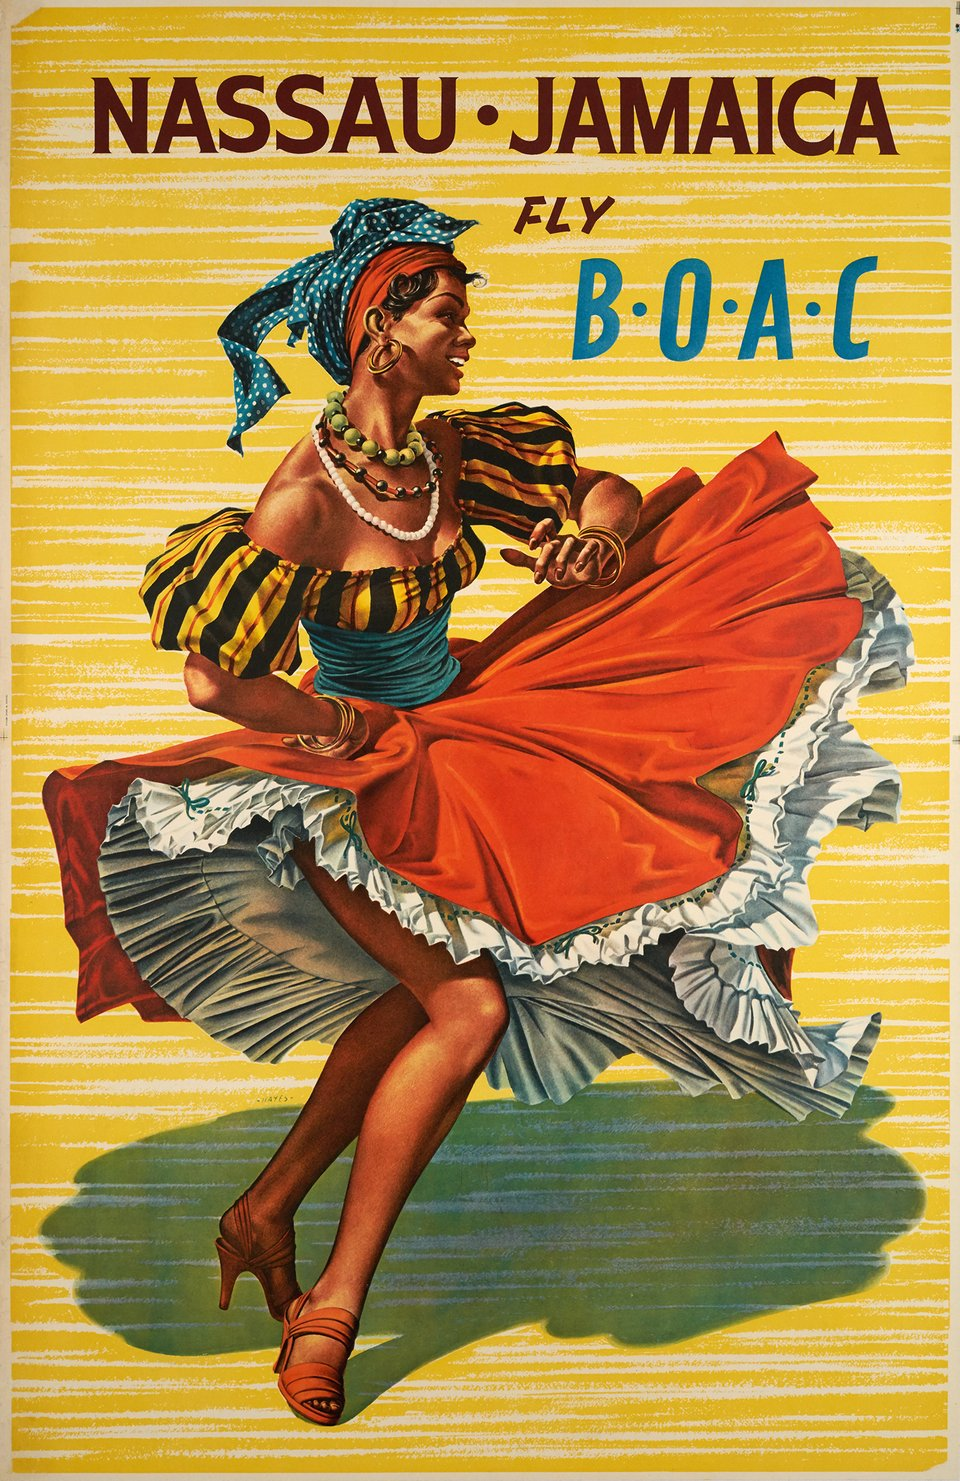 Fly B.O.A.C. , Nassau Jamaica – Affiche ancienne – ANONYMOUS – 1950